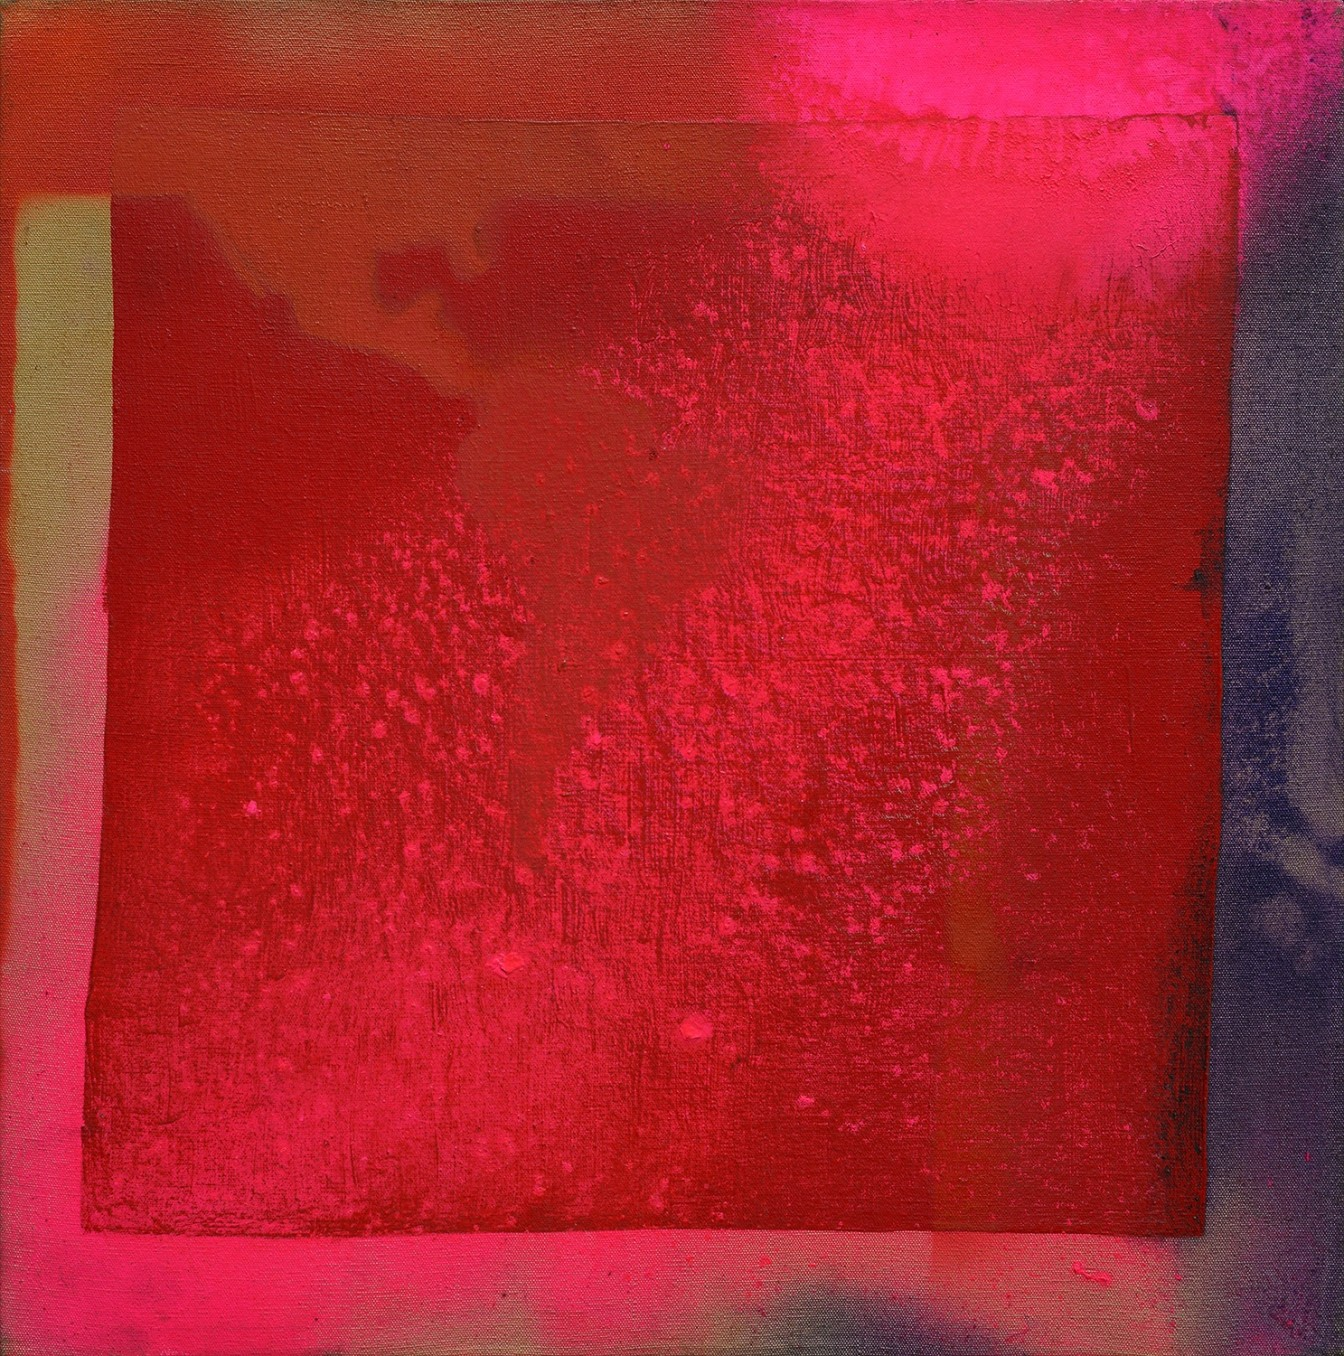 Frank Bowling, Untitled (After Hafif), 1969, Acrylic on canvas, 55.5 x 56 cm, 21 7/8 x 22 1/8 in